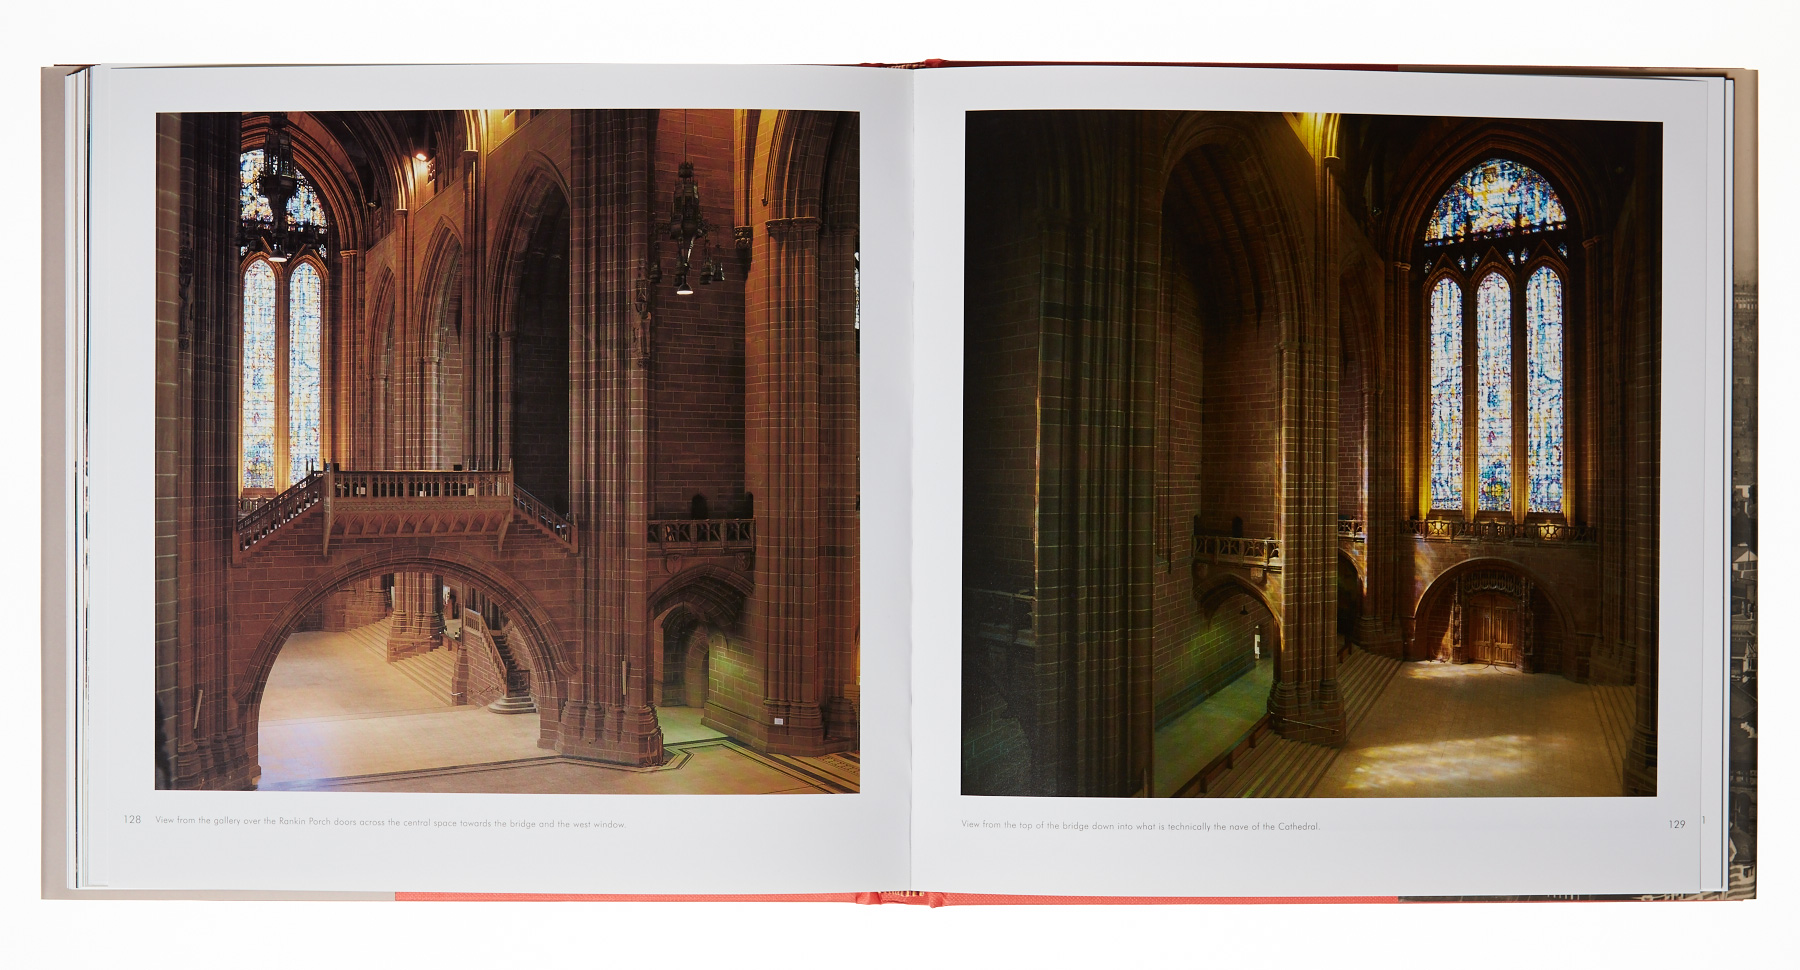 liverpool-cathedral-book-page-128.jpg